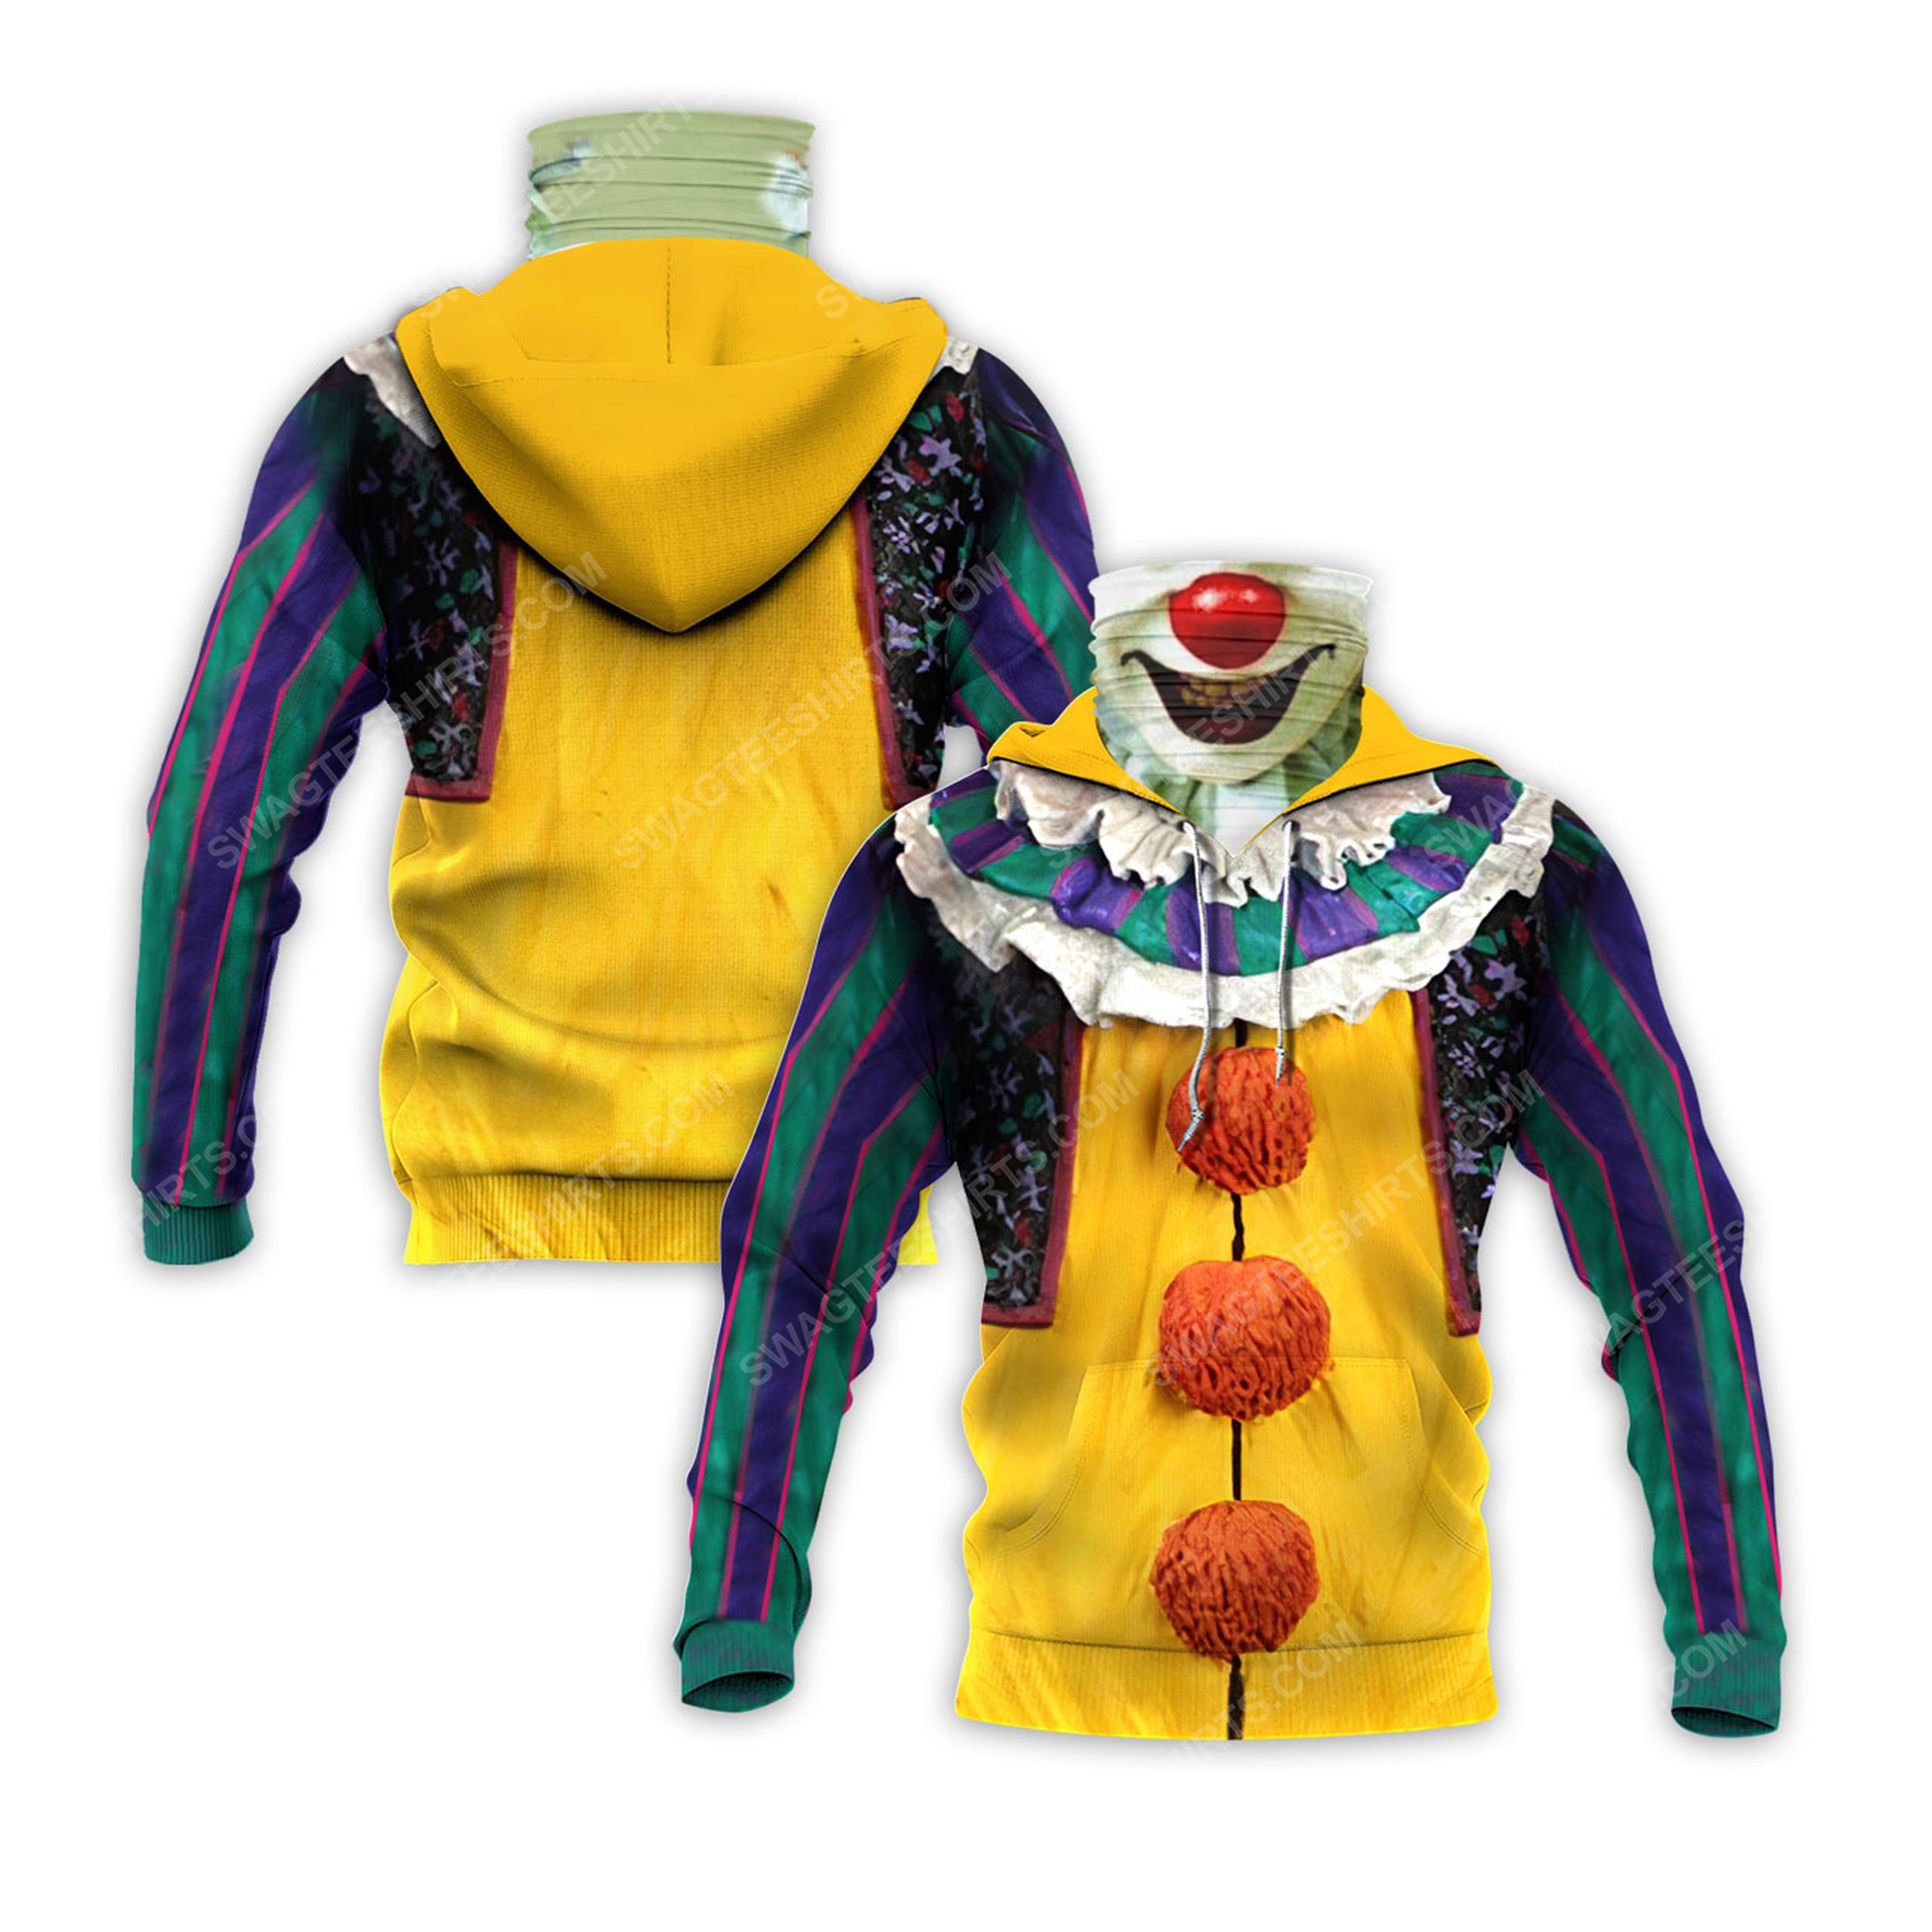 Pennywise the dancing clown for halloween full print mask hoodie 2(1)